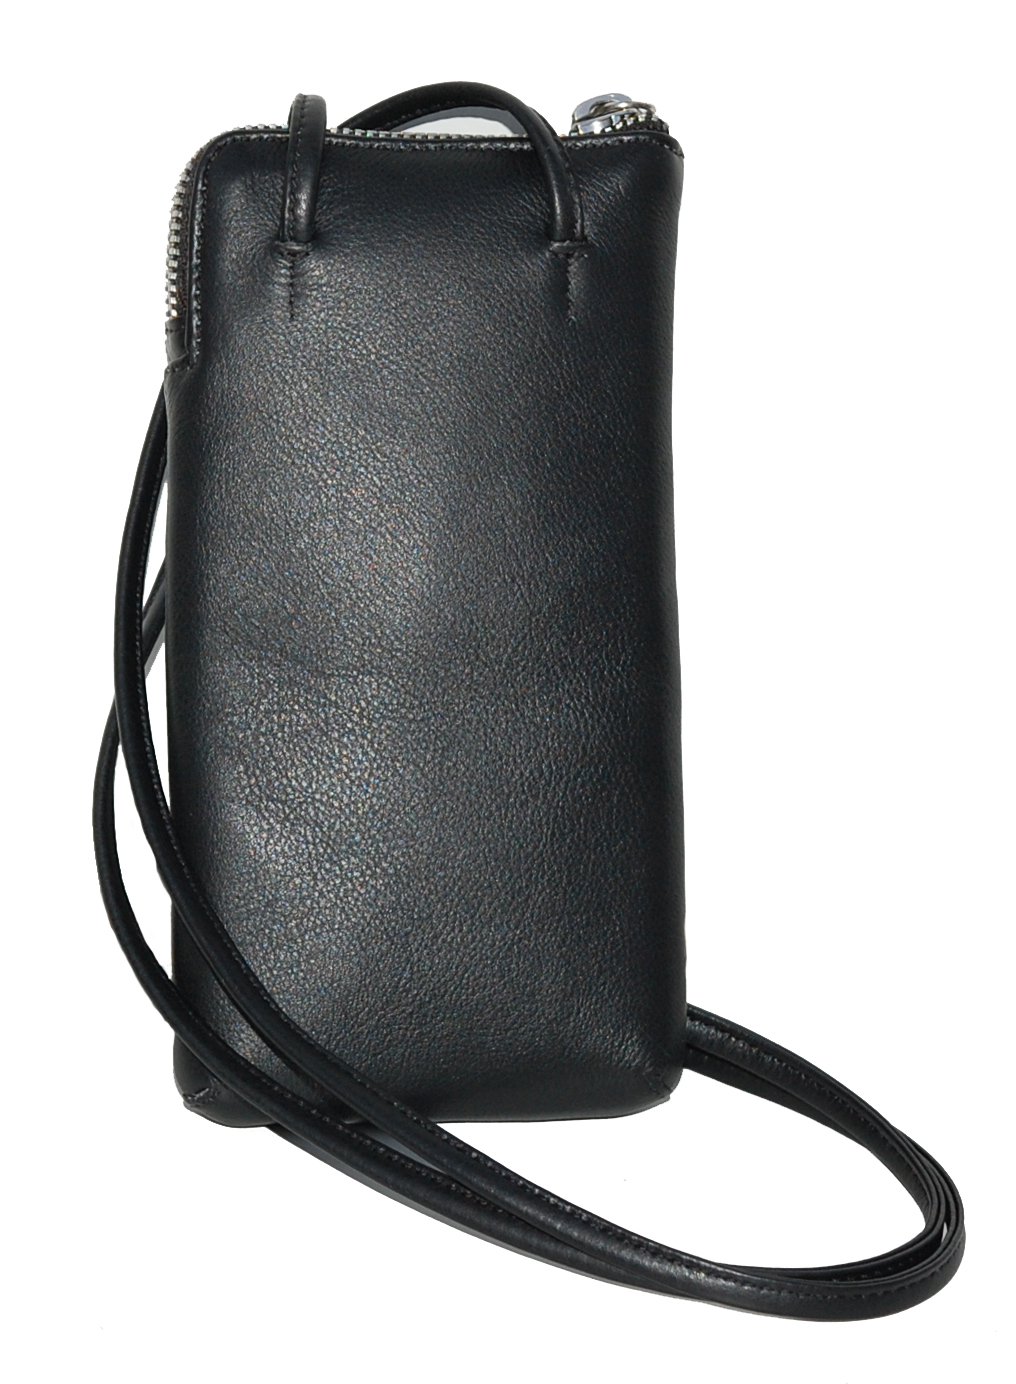 Women's leather cell phone pouch with shoulder strap